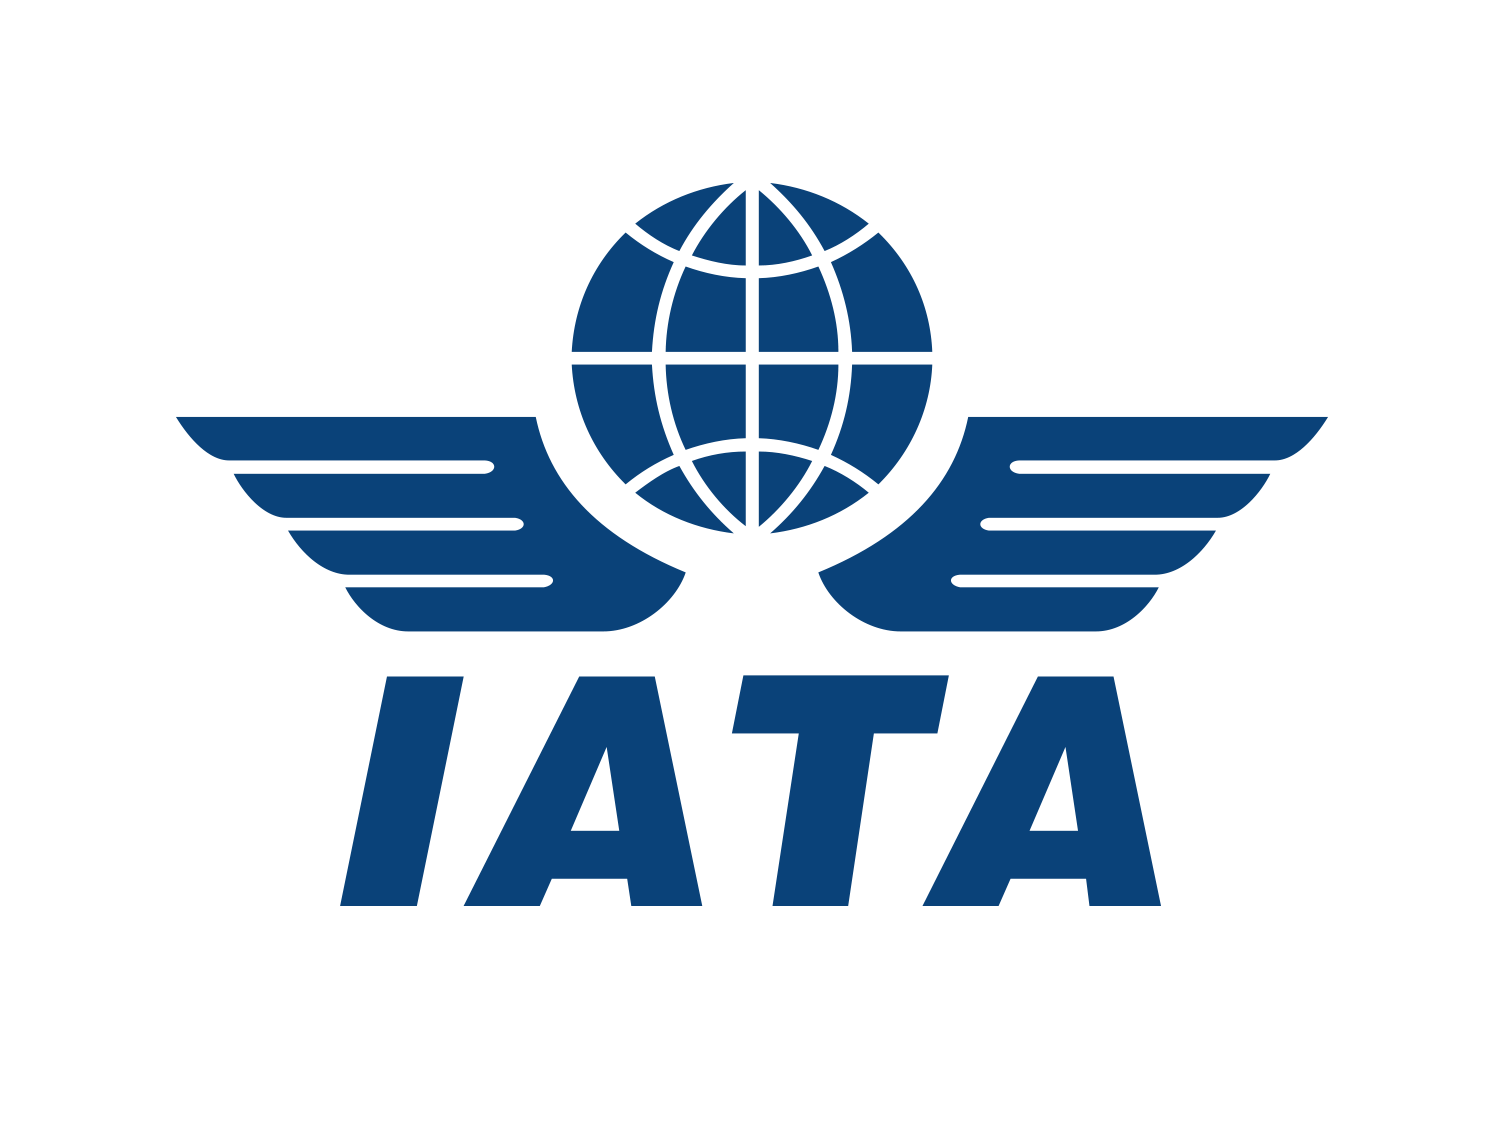 Logo of IATA